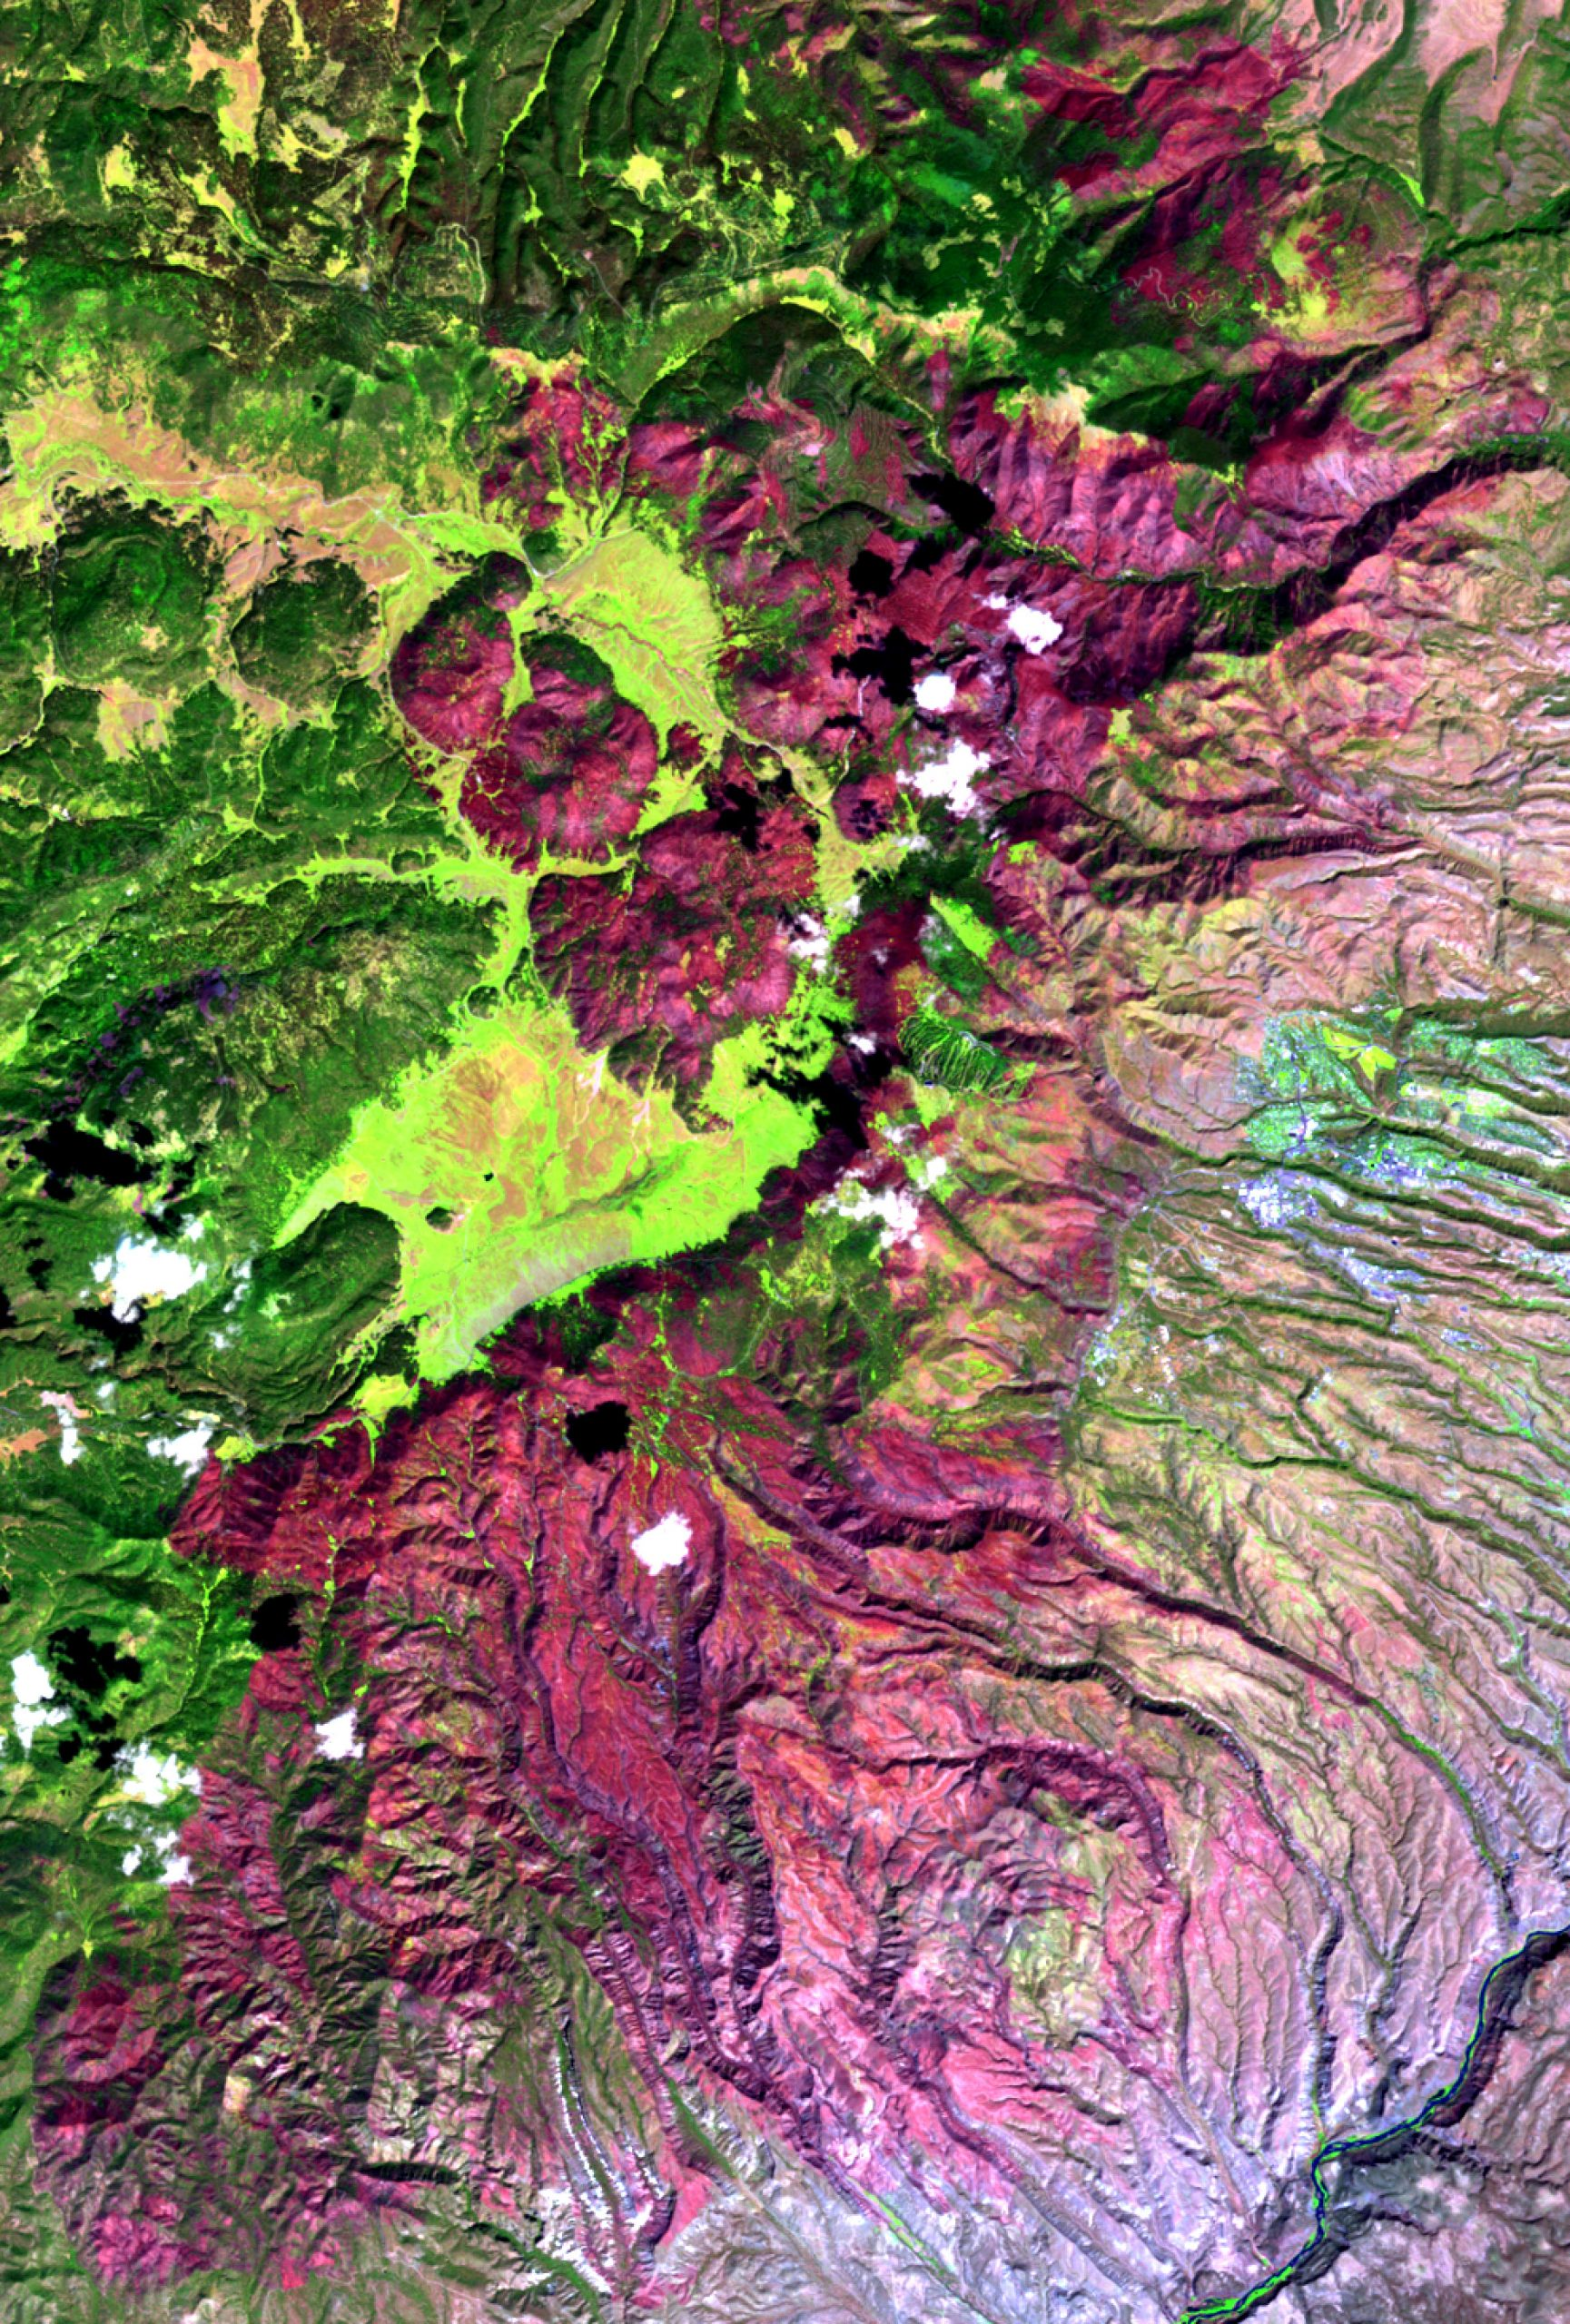 A satellite image of the 2011 Las Conchas Fire in New Mexico shows the 150,874 acres burned in magenta and the unburned areas in green. This image was created with data from the Monitoring Trends in Burn Severity (MTBS) Project that the authors of a new study, led by the University of Utah geographer Phil Dennison, used to measure large wildfires in the western United States.